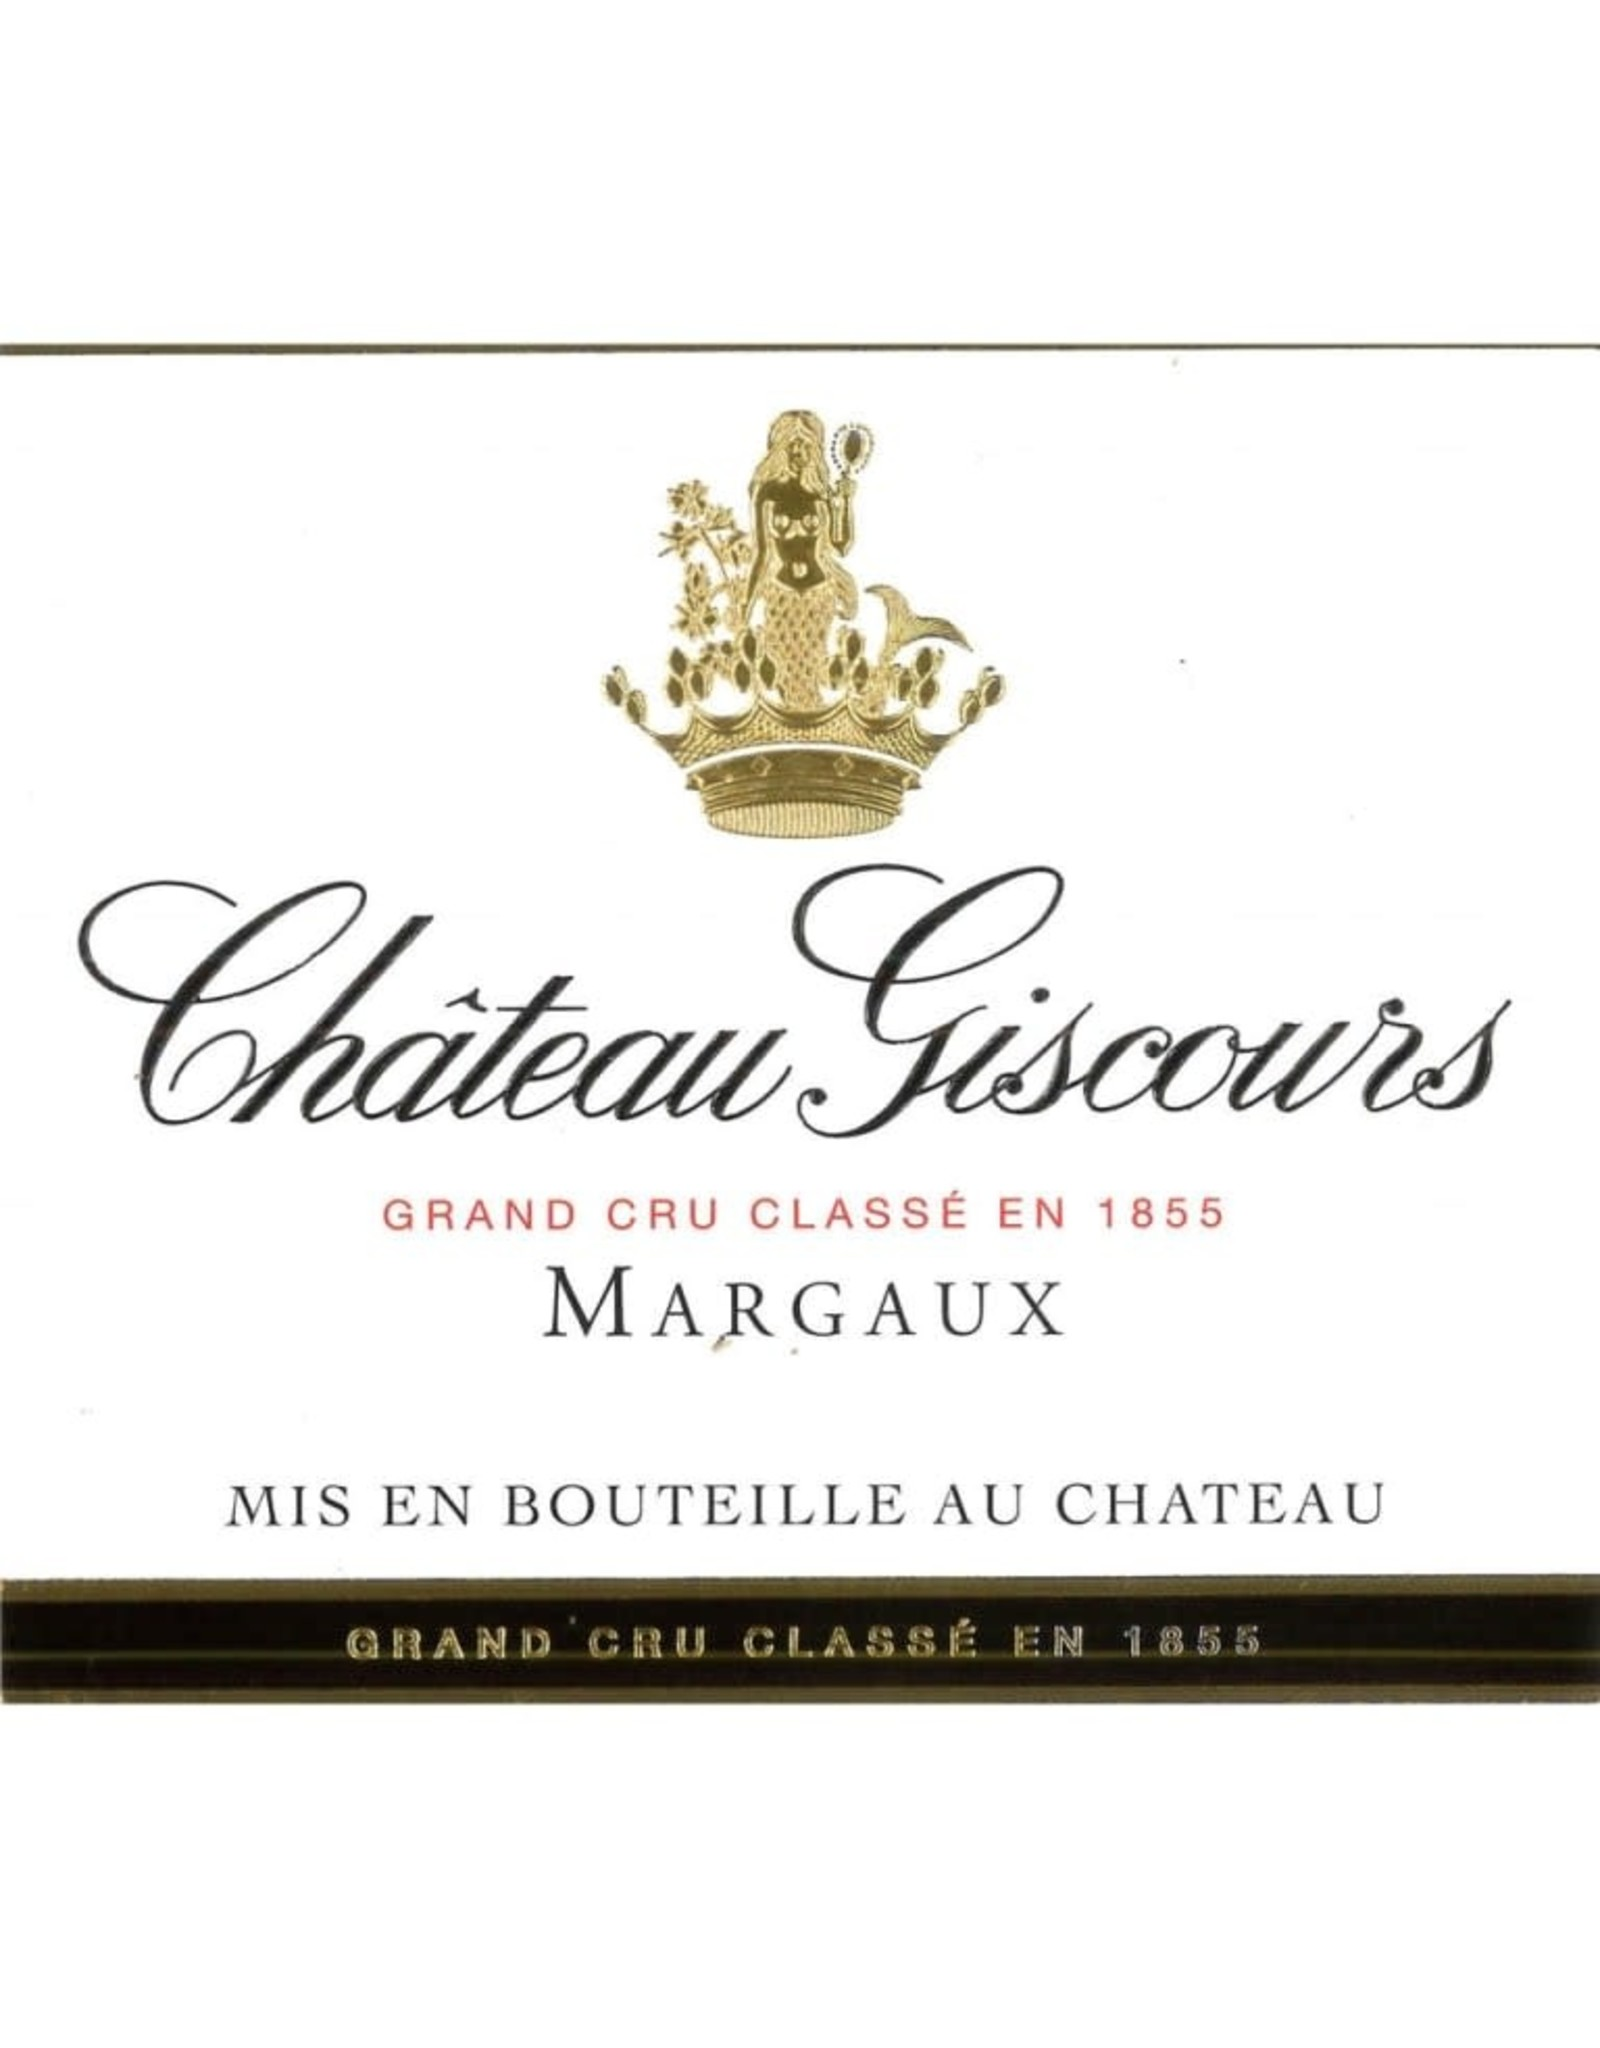 Chateau Giscours Chateau Giscours, Margaux 2016